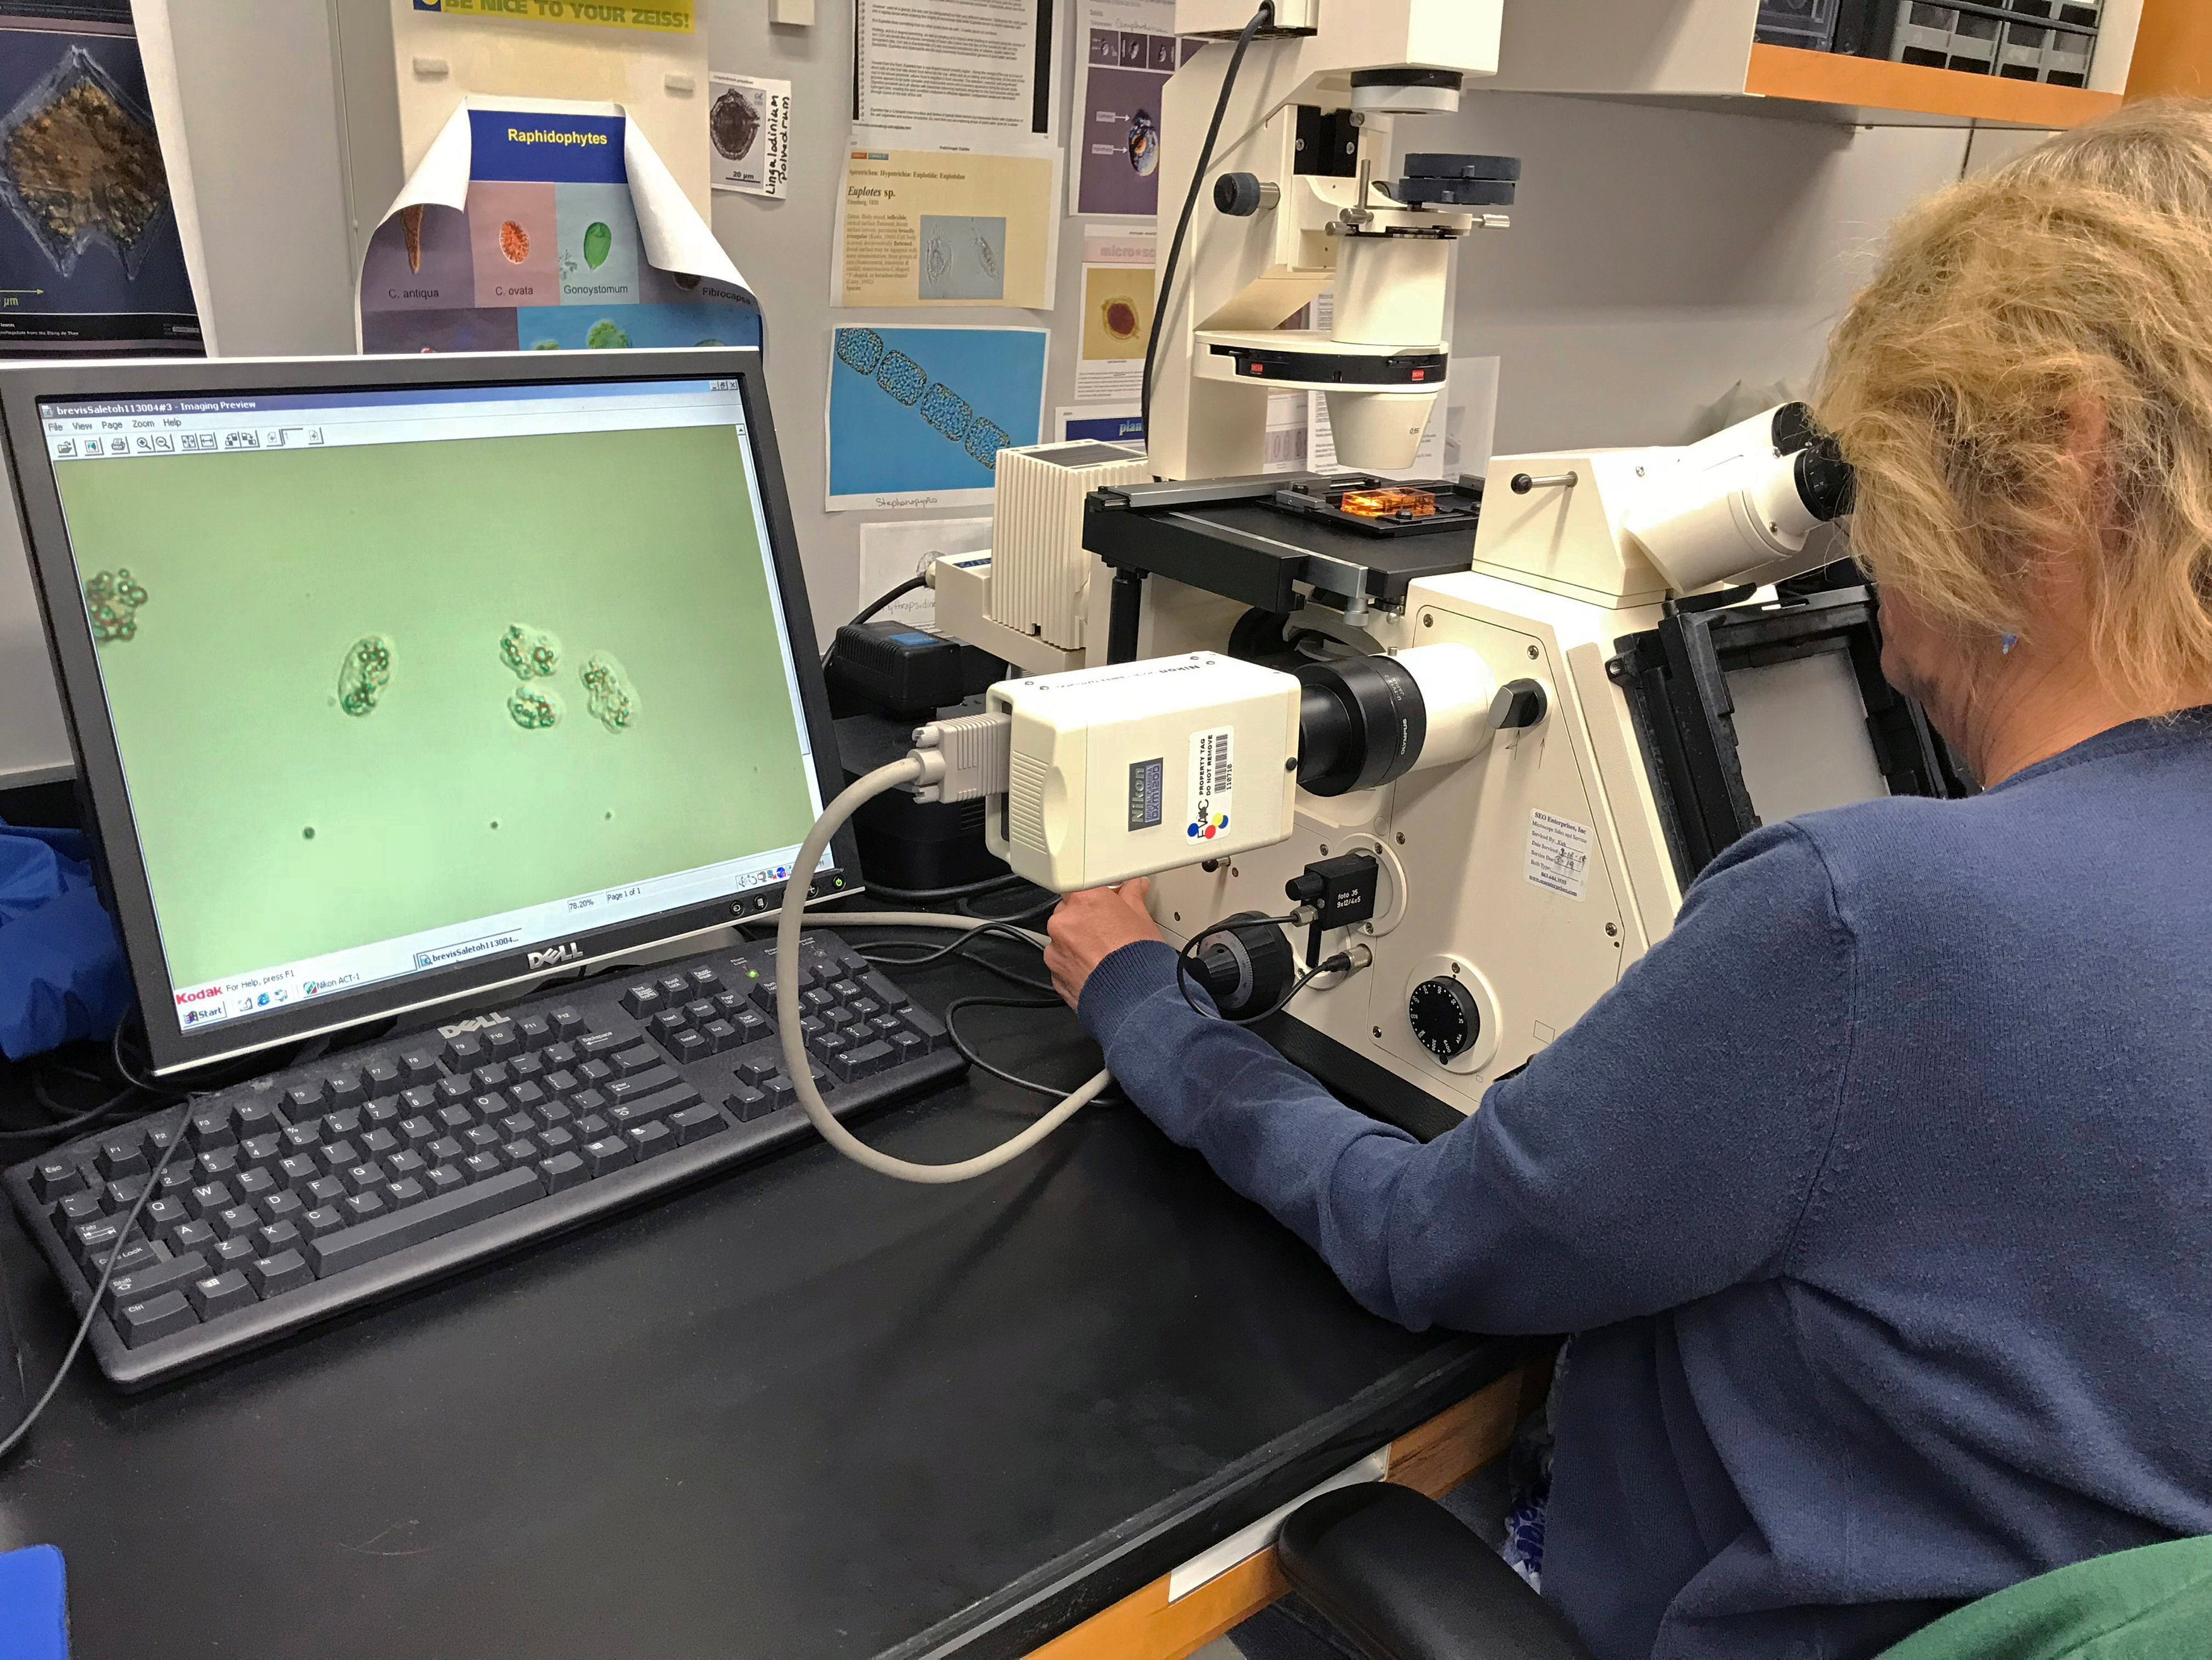 Handout photo of Florida Fish and Wildlife Conservation Commission scientist counting Karenia brevis (red tide) cells